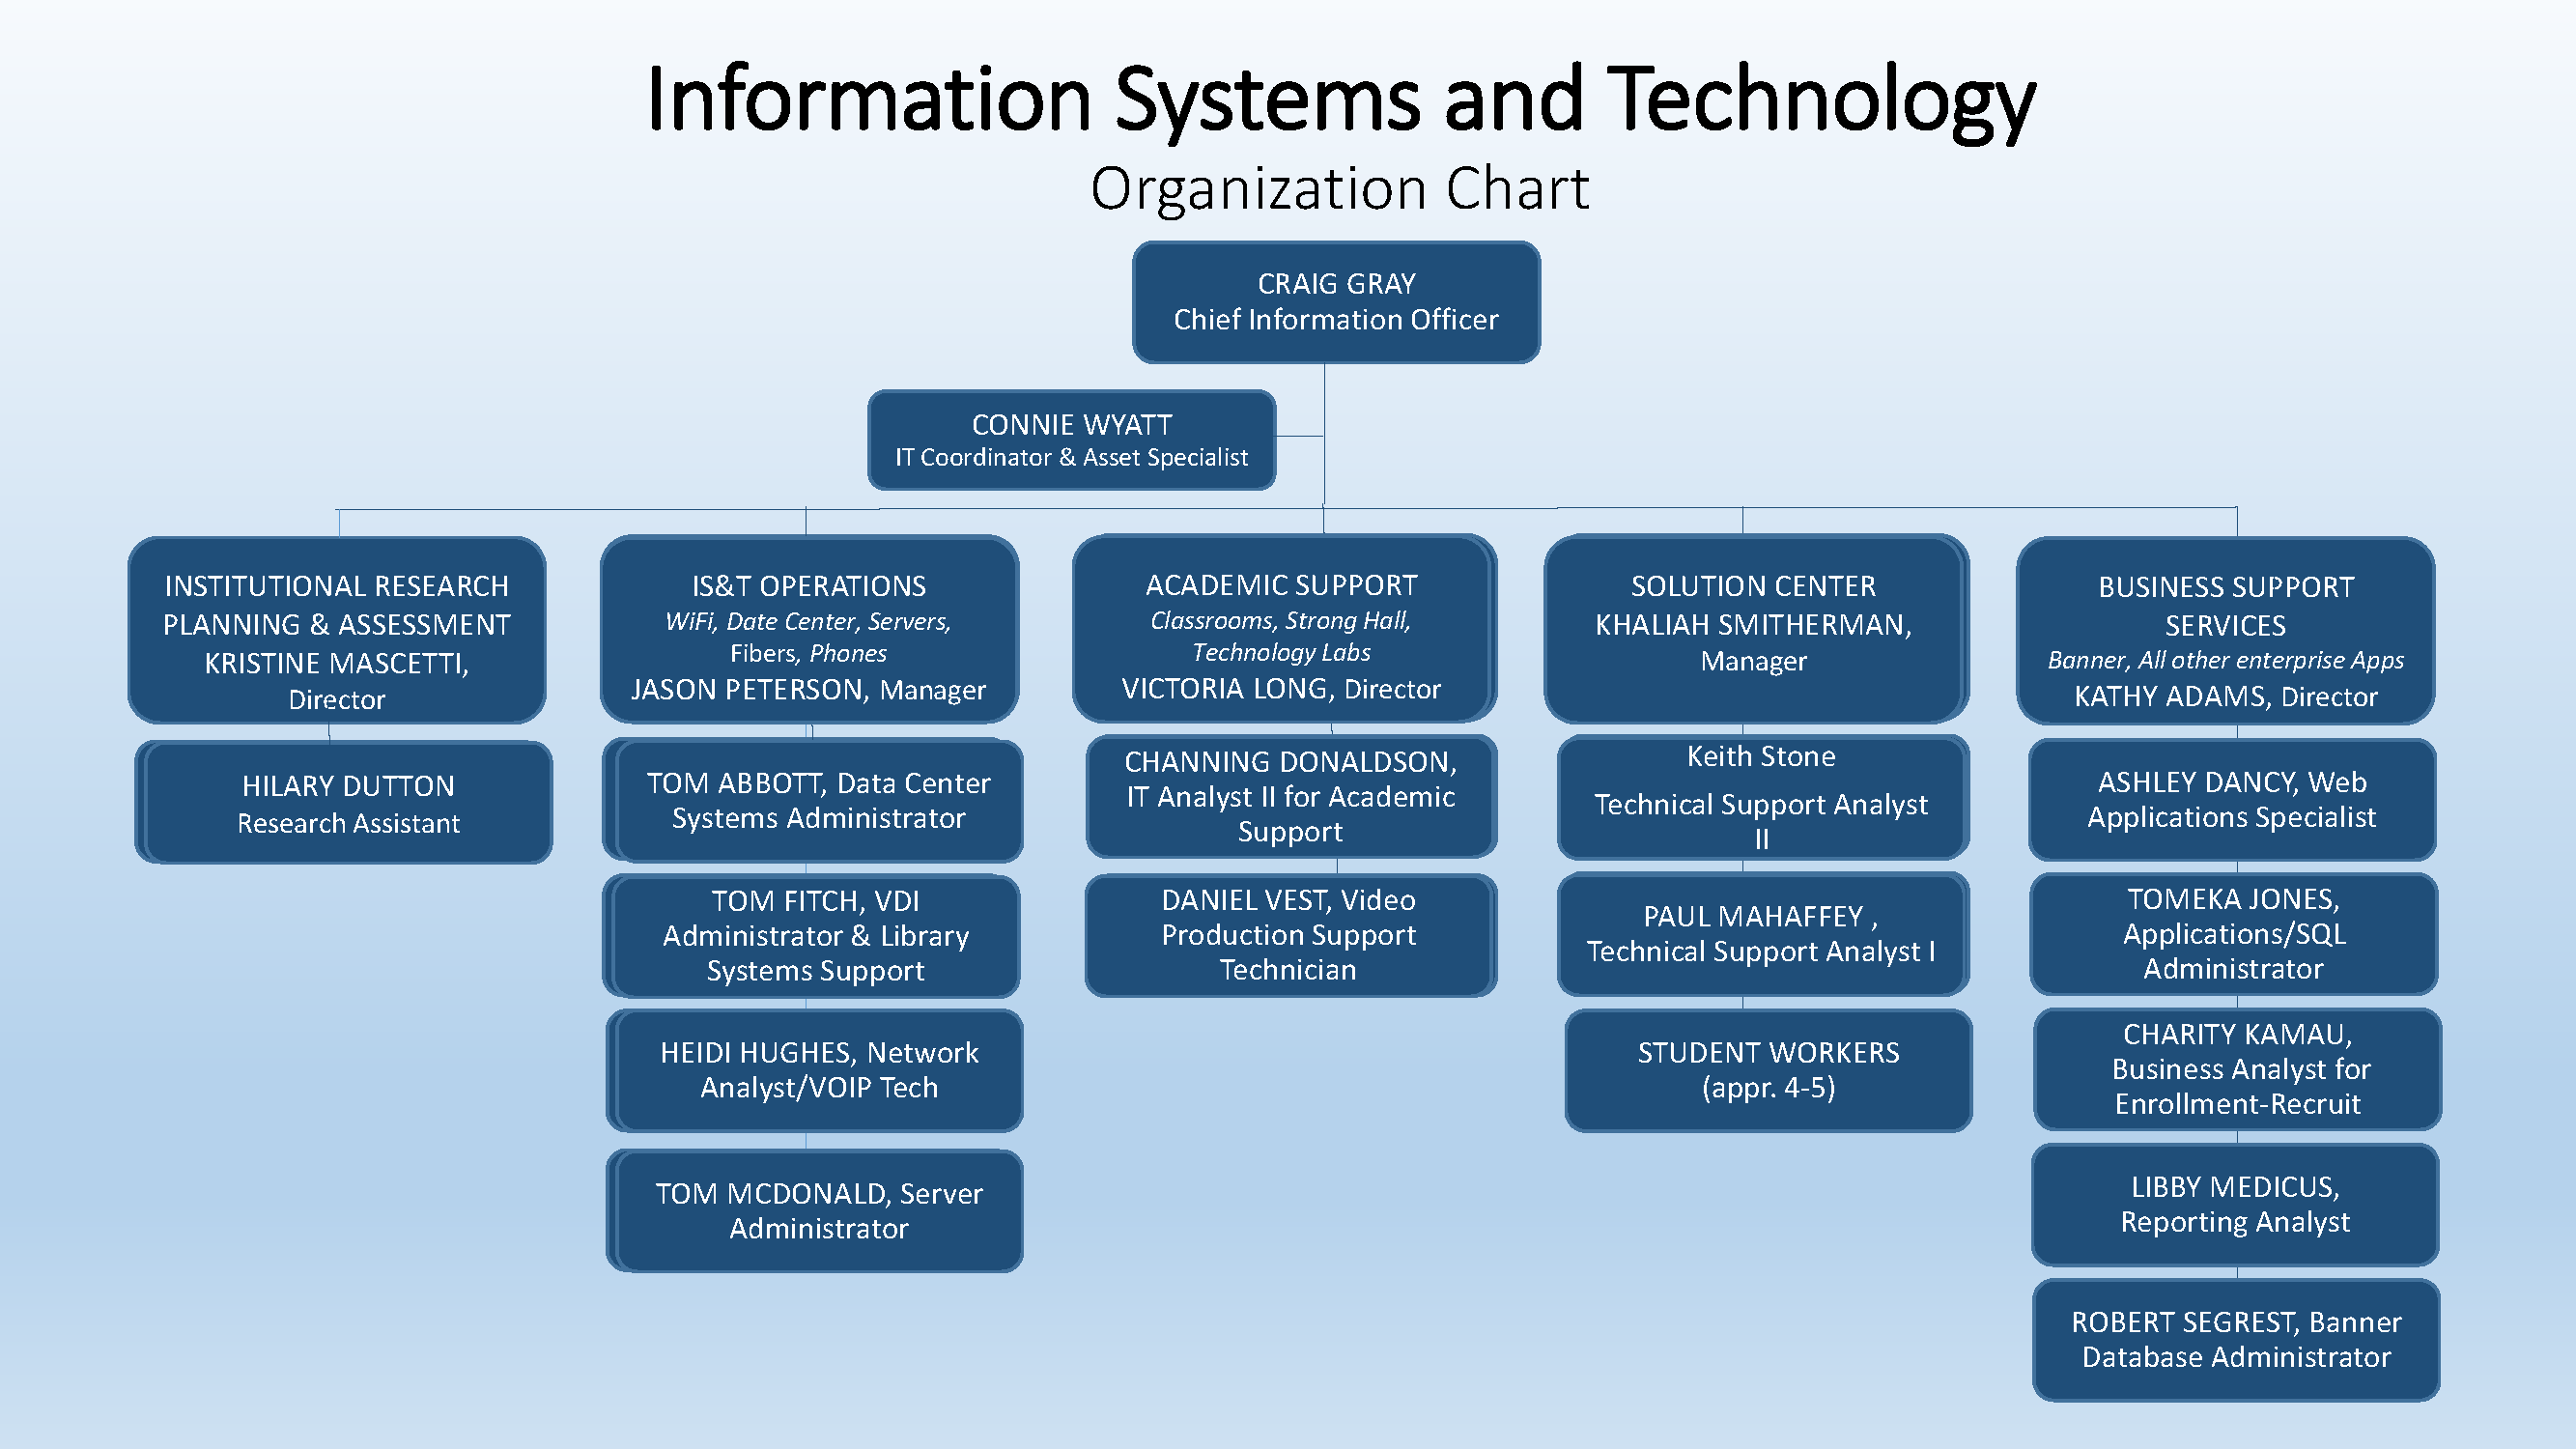 Information Systems and Technology Organization Chart -Craig Gray